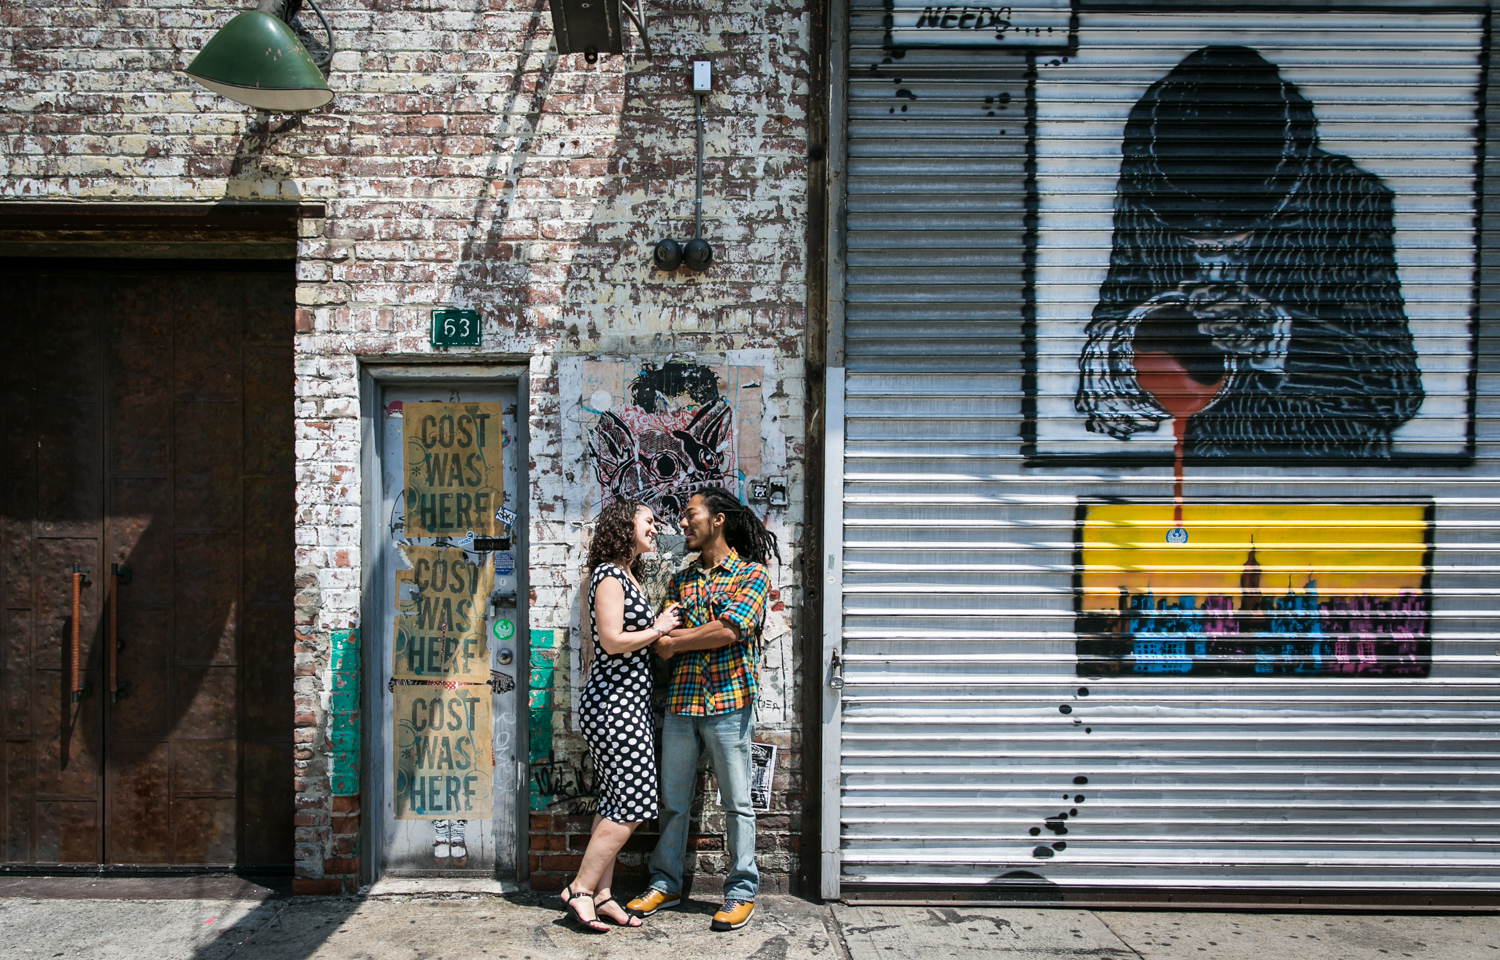 Meatpacking District engagement photos of couple dancing in front of graffiti wall